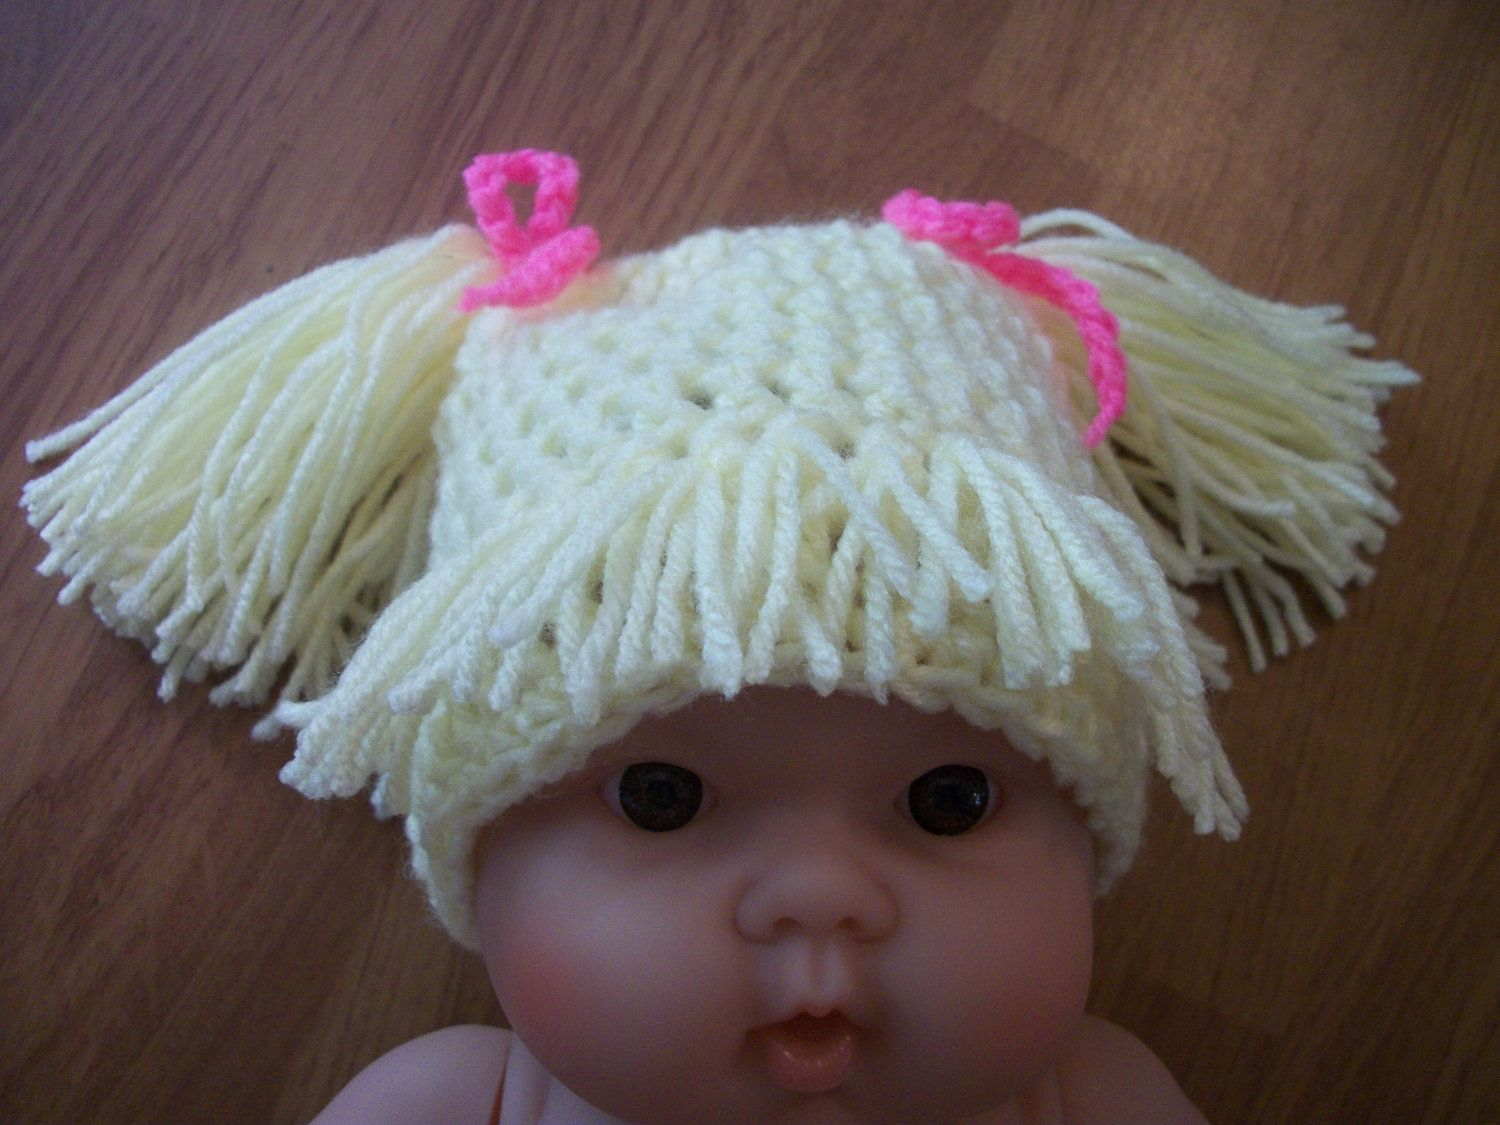 cabbage patch crochet hat pattern free | 13 year Cabbage Patch Hat ...